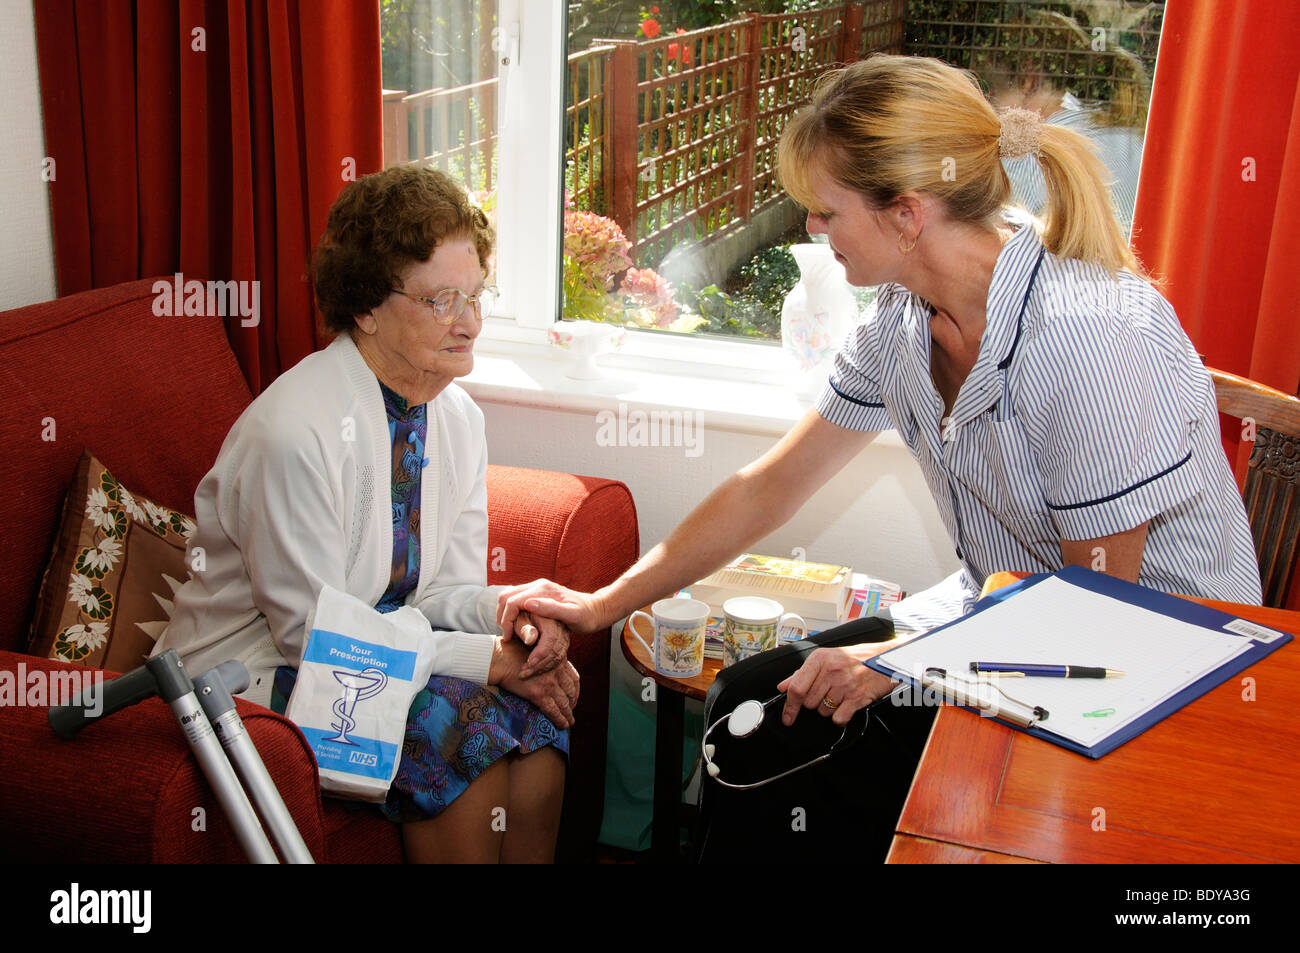 Nursing care with the elderly nurse visiting an elderly woman in her home - Stock Image